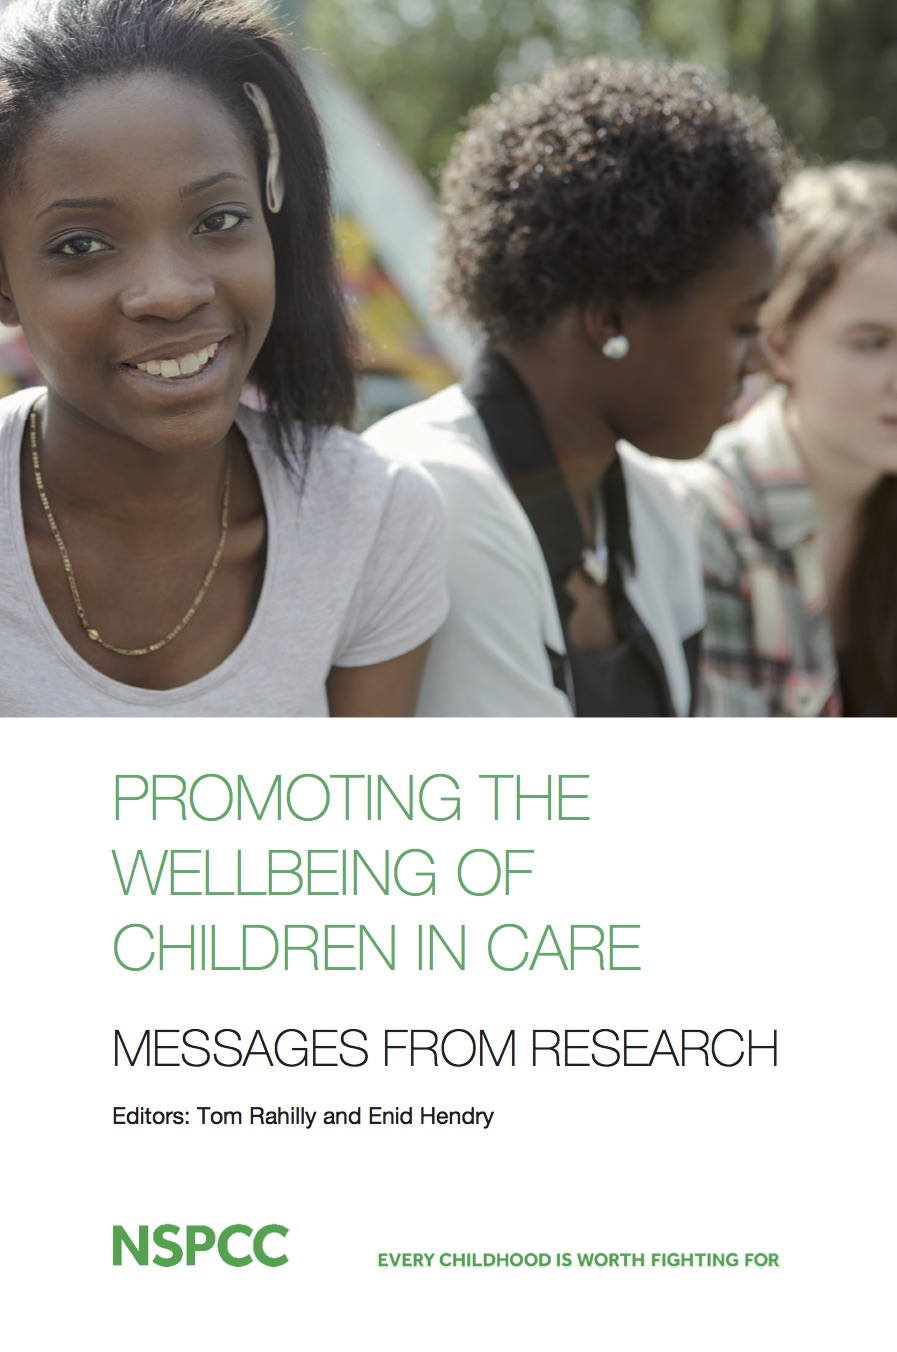 Promoting the wellbeing of children in care